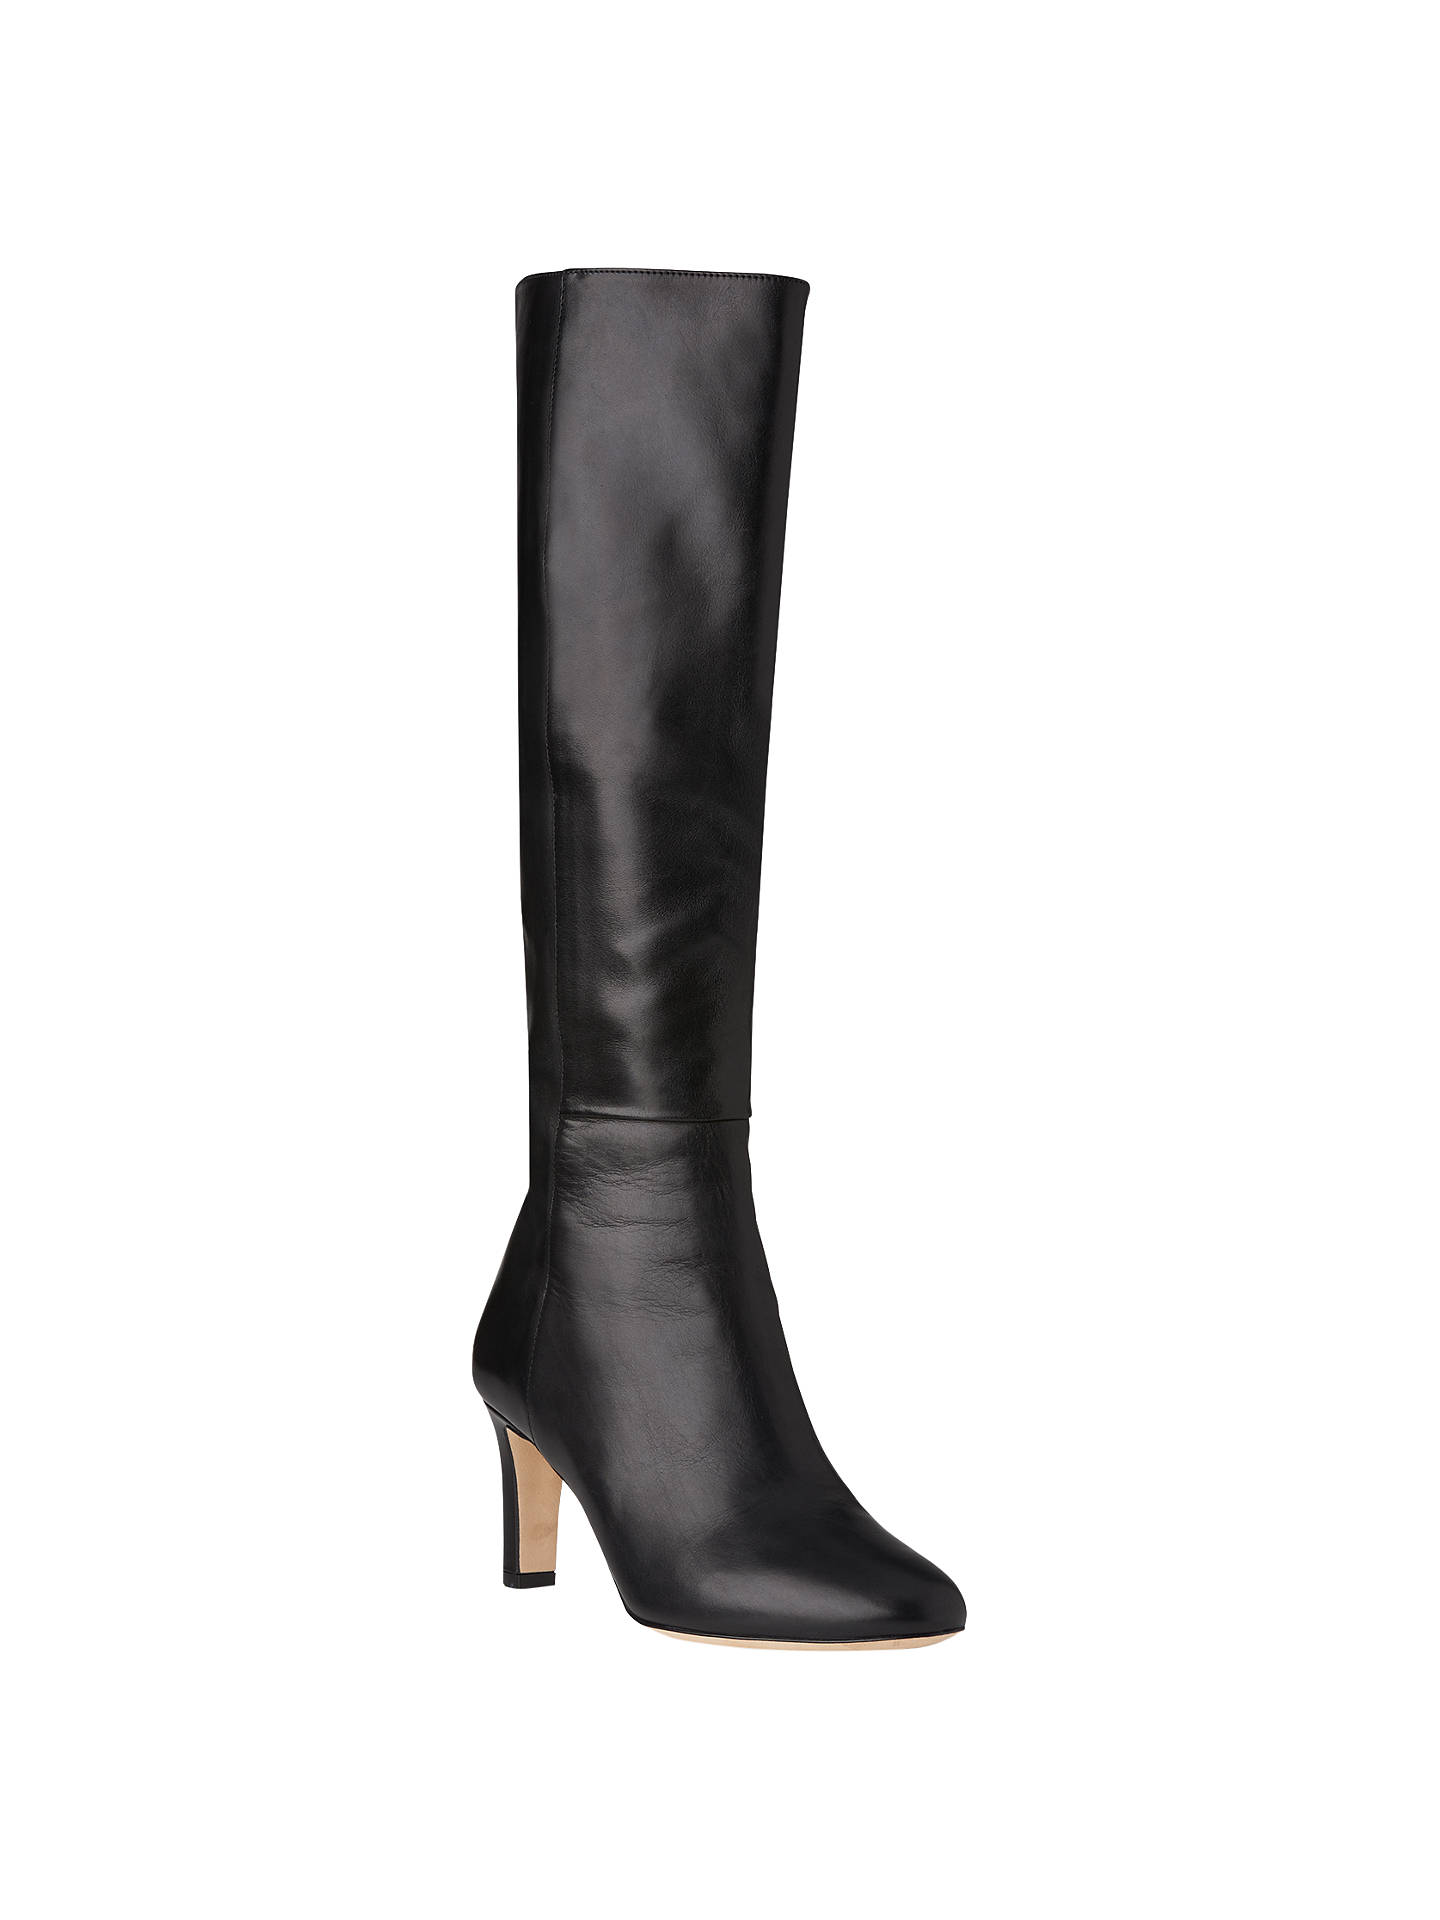 e7b12860a1e Buy L.K. Bennett Eloria Knee High Boots, Black, 2 Online at johnlewis.com  ...